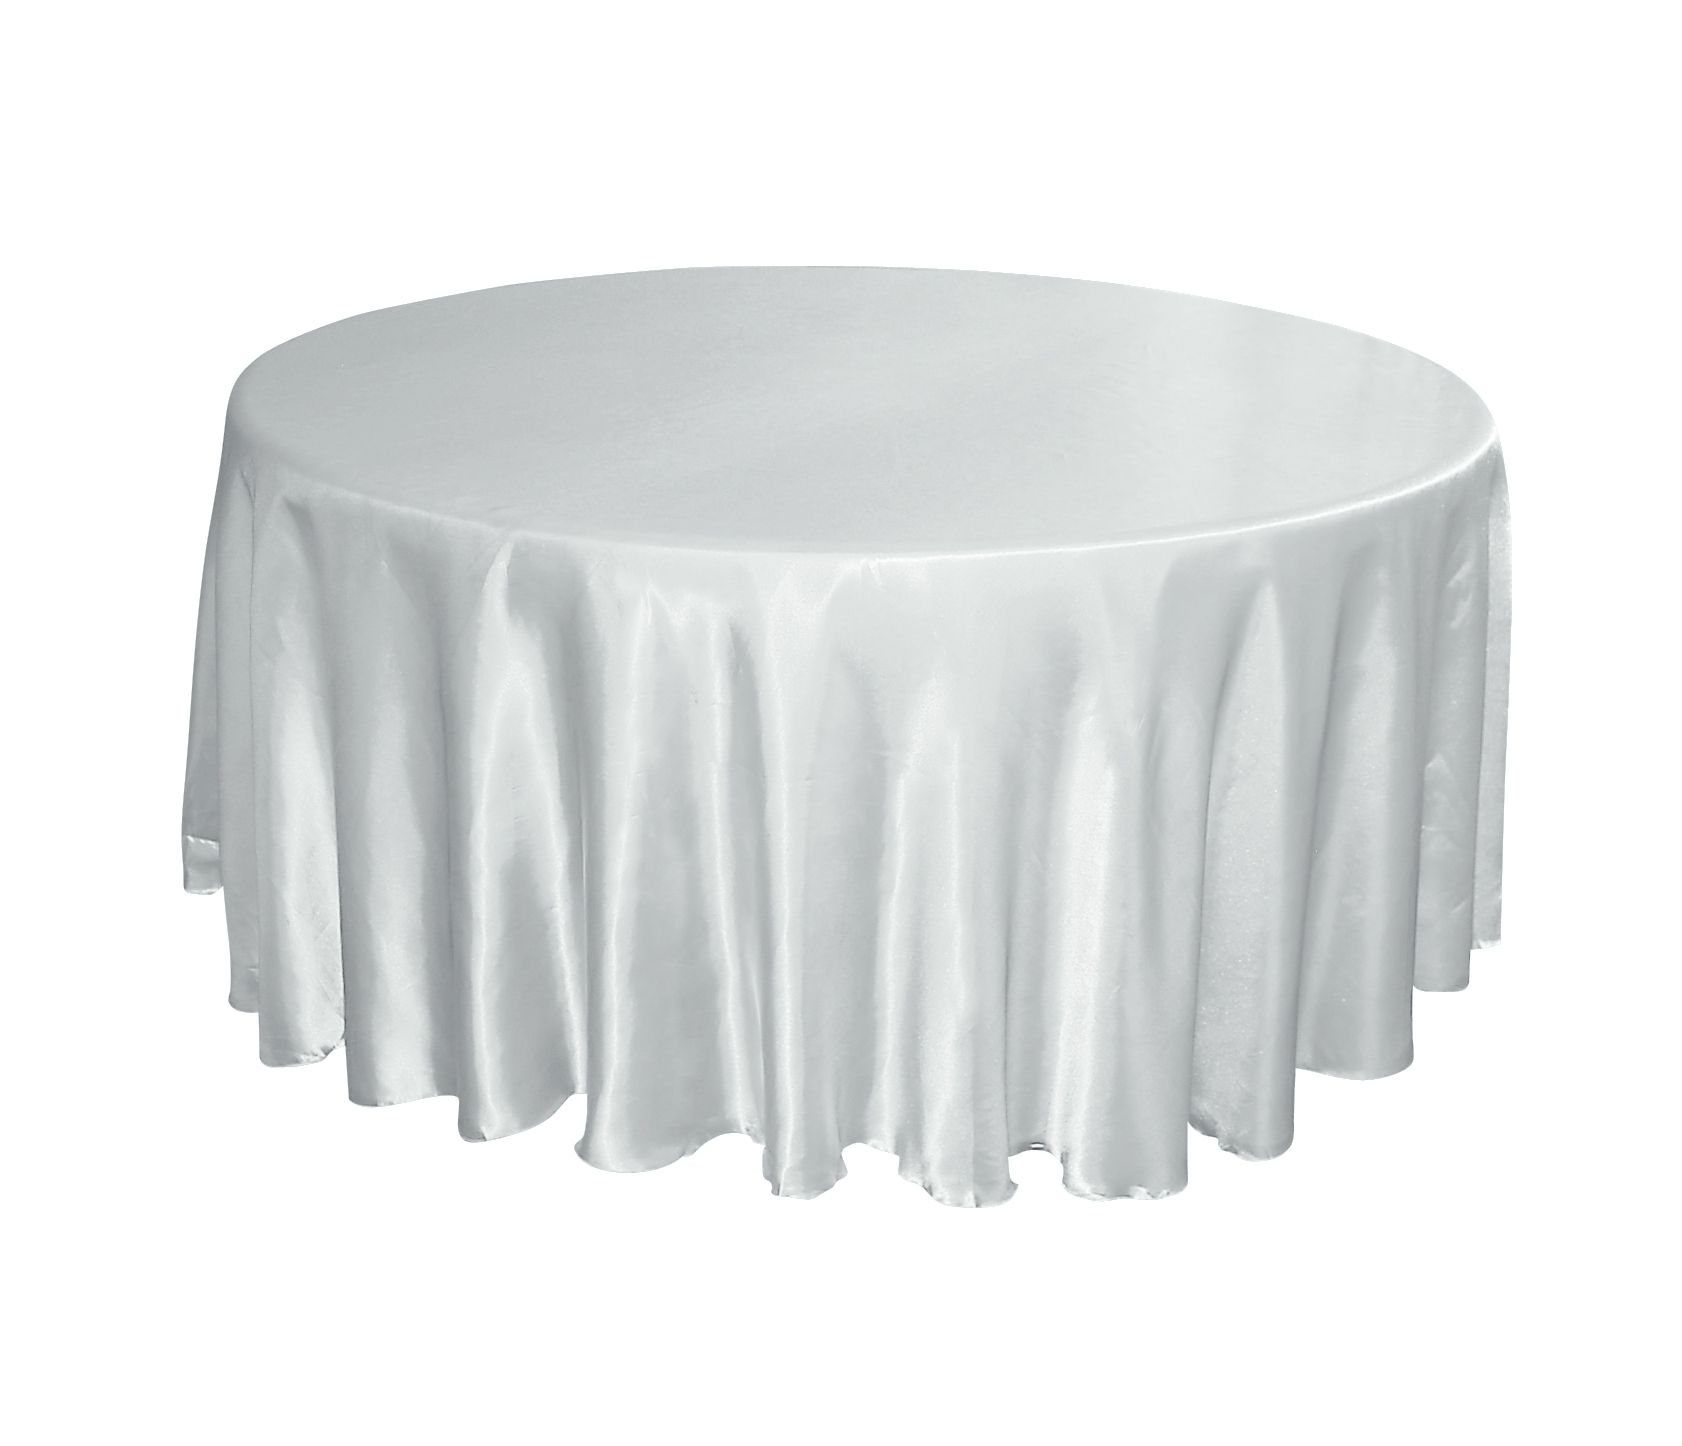 Genial Round Plastic Table Covers 120